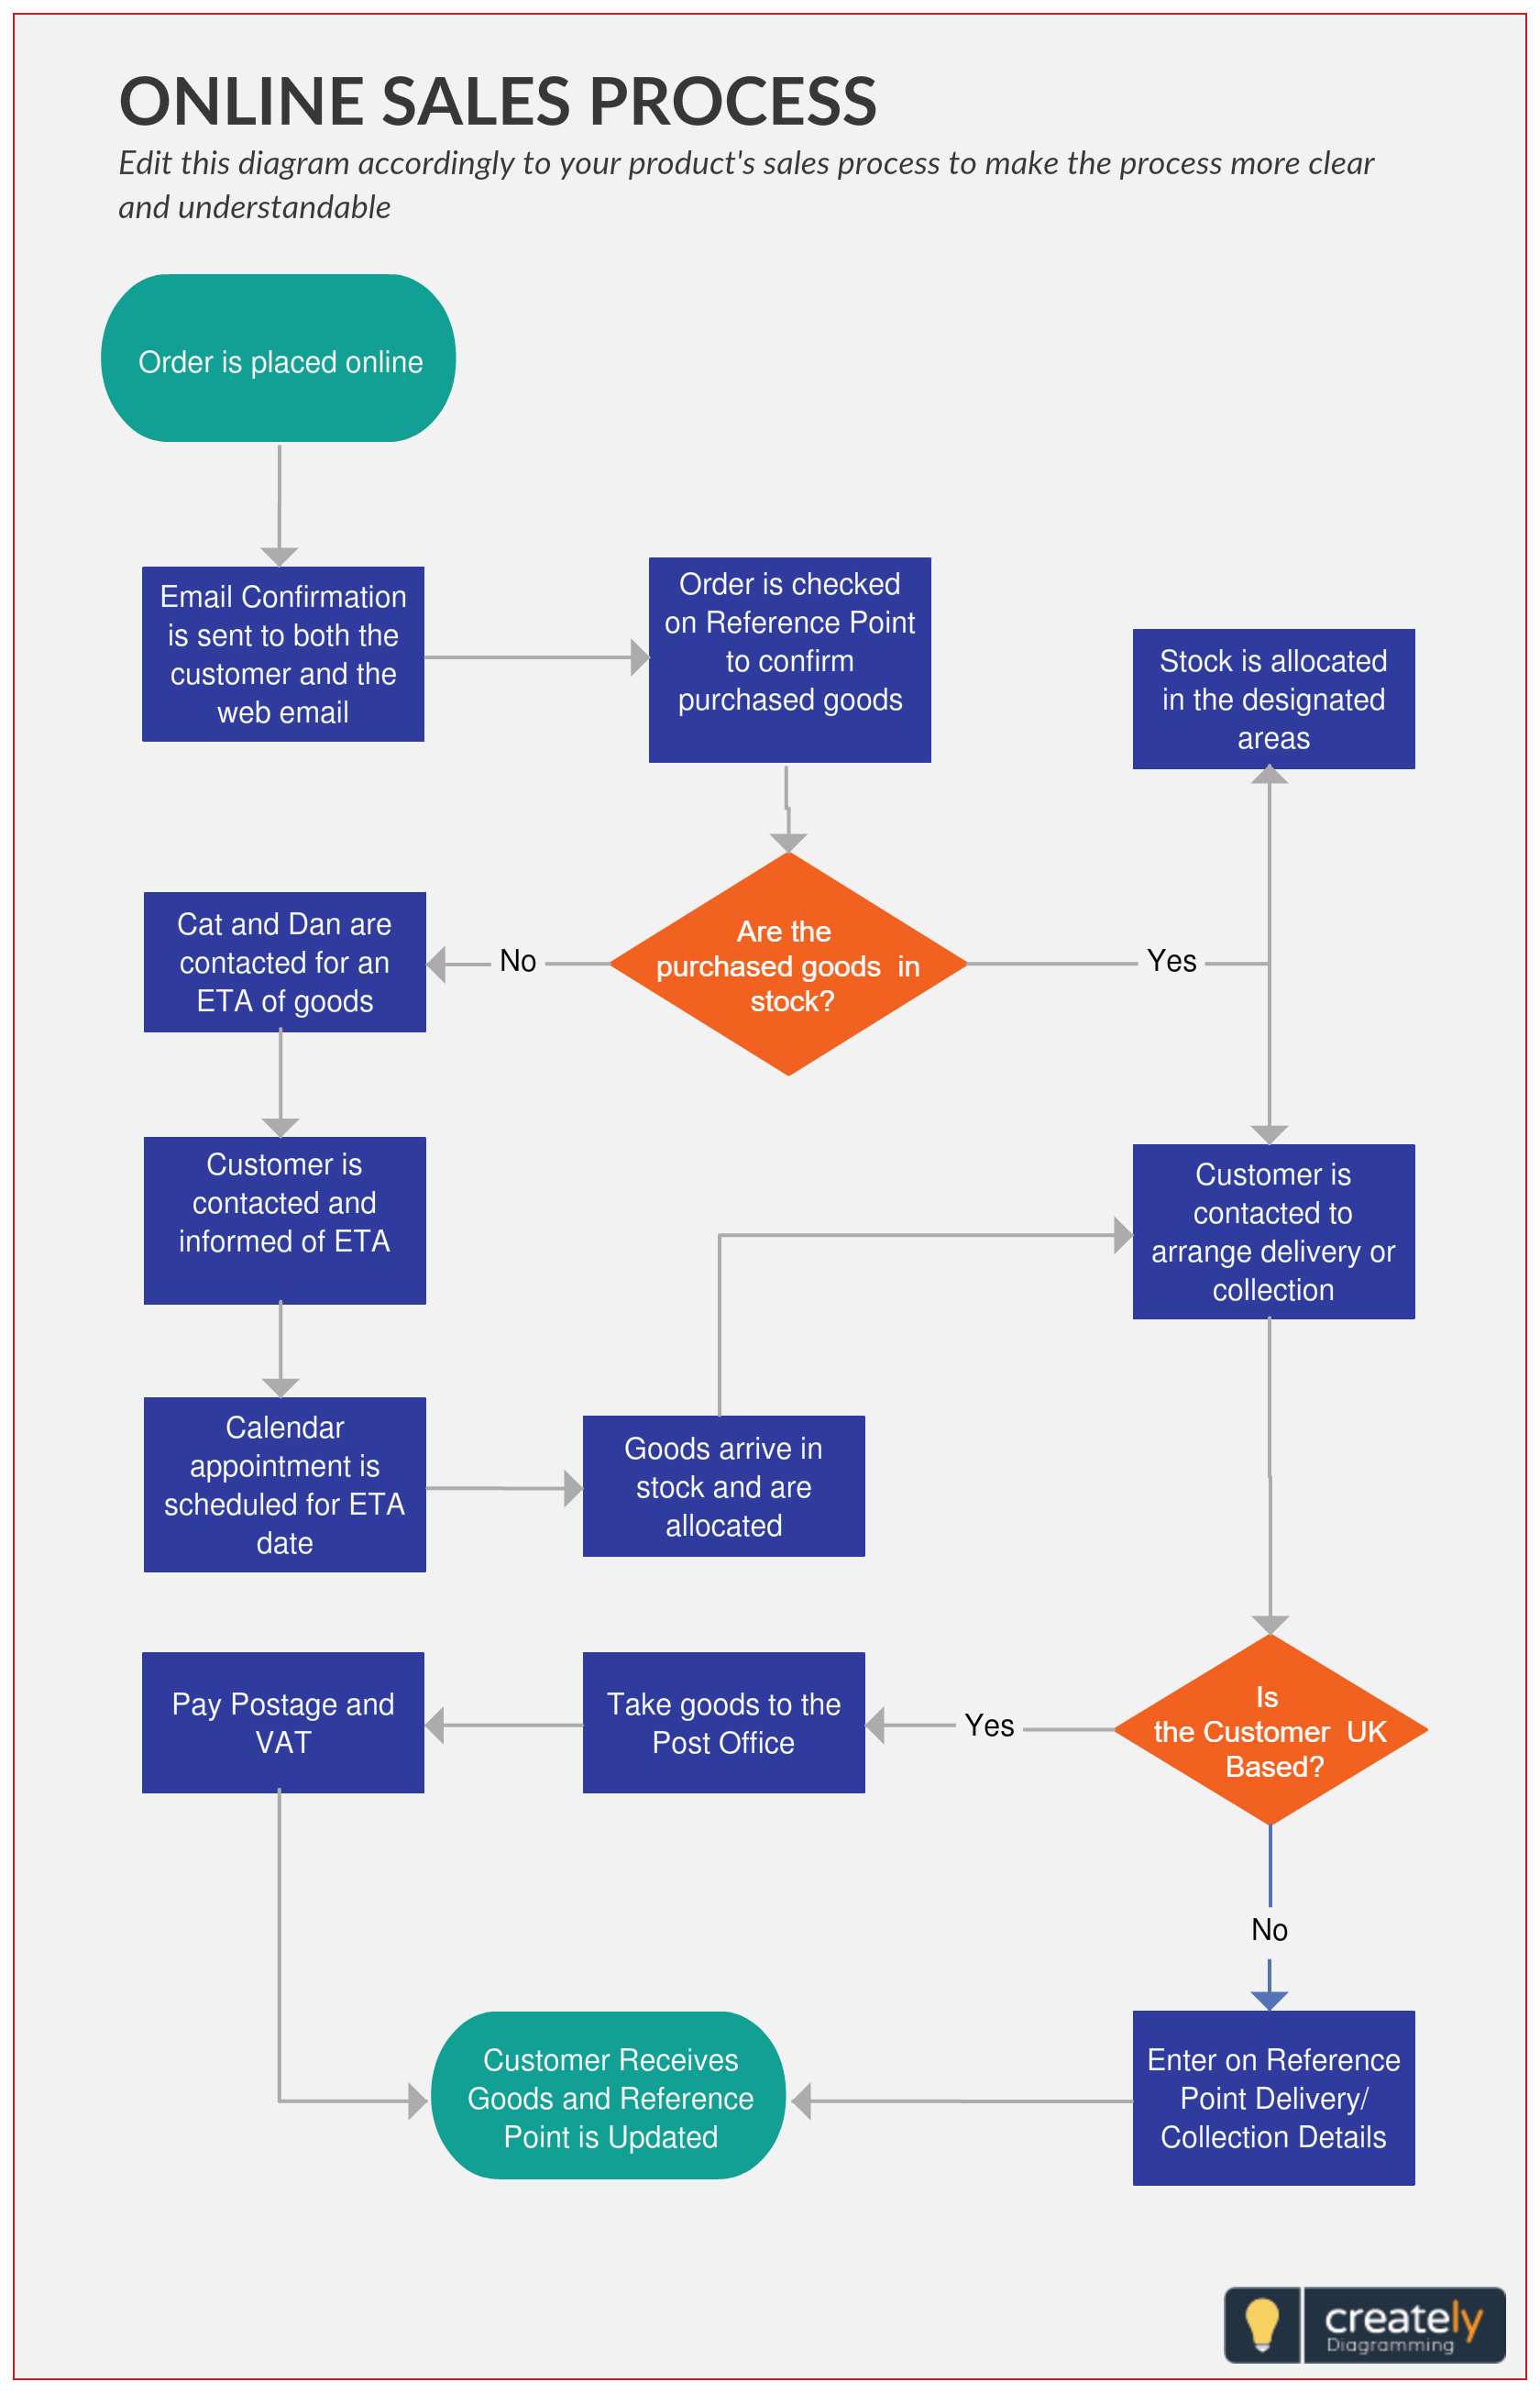 Sales Process chart shows the steps and actions that an online ...